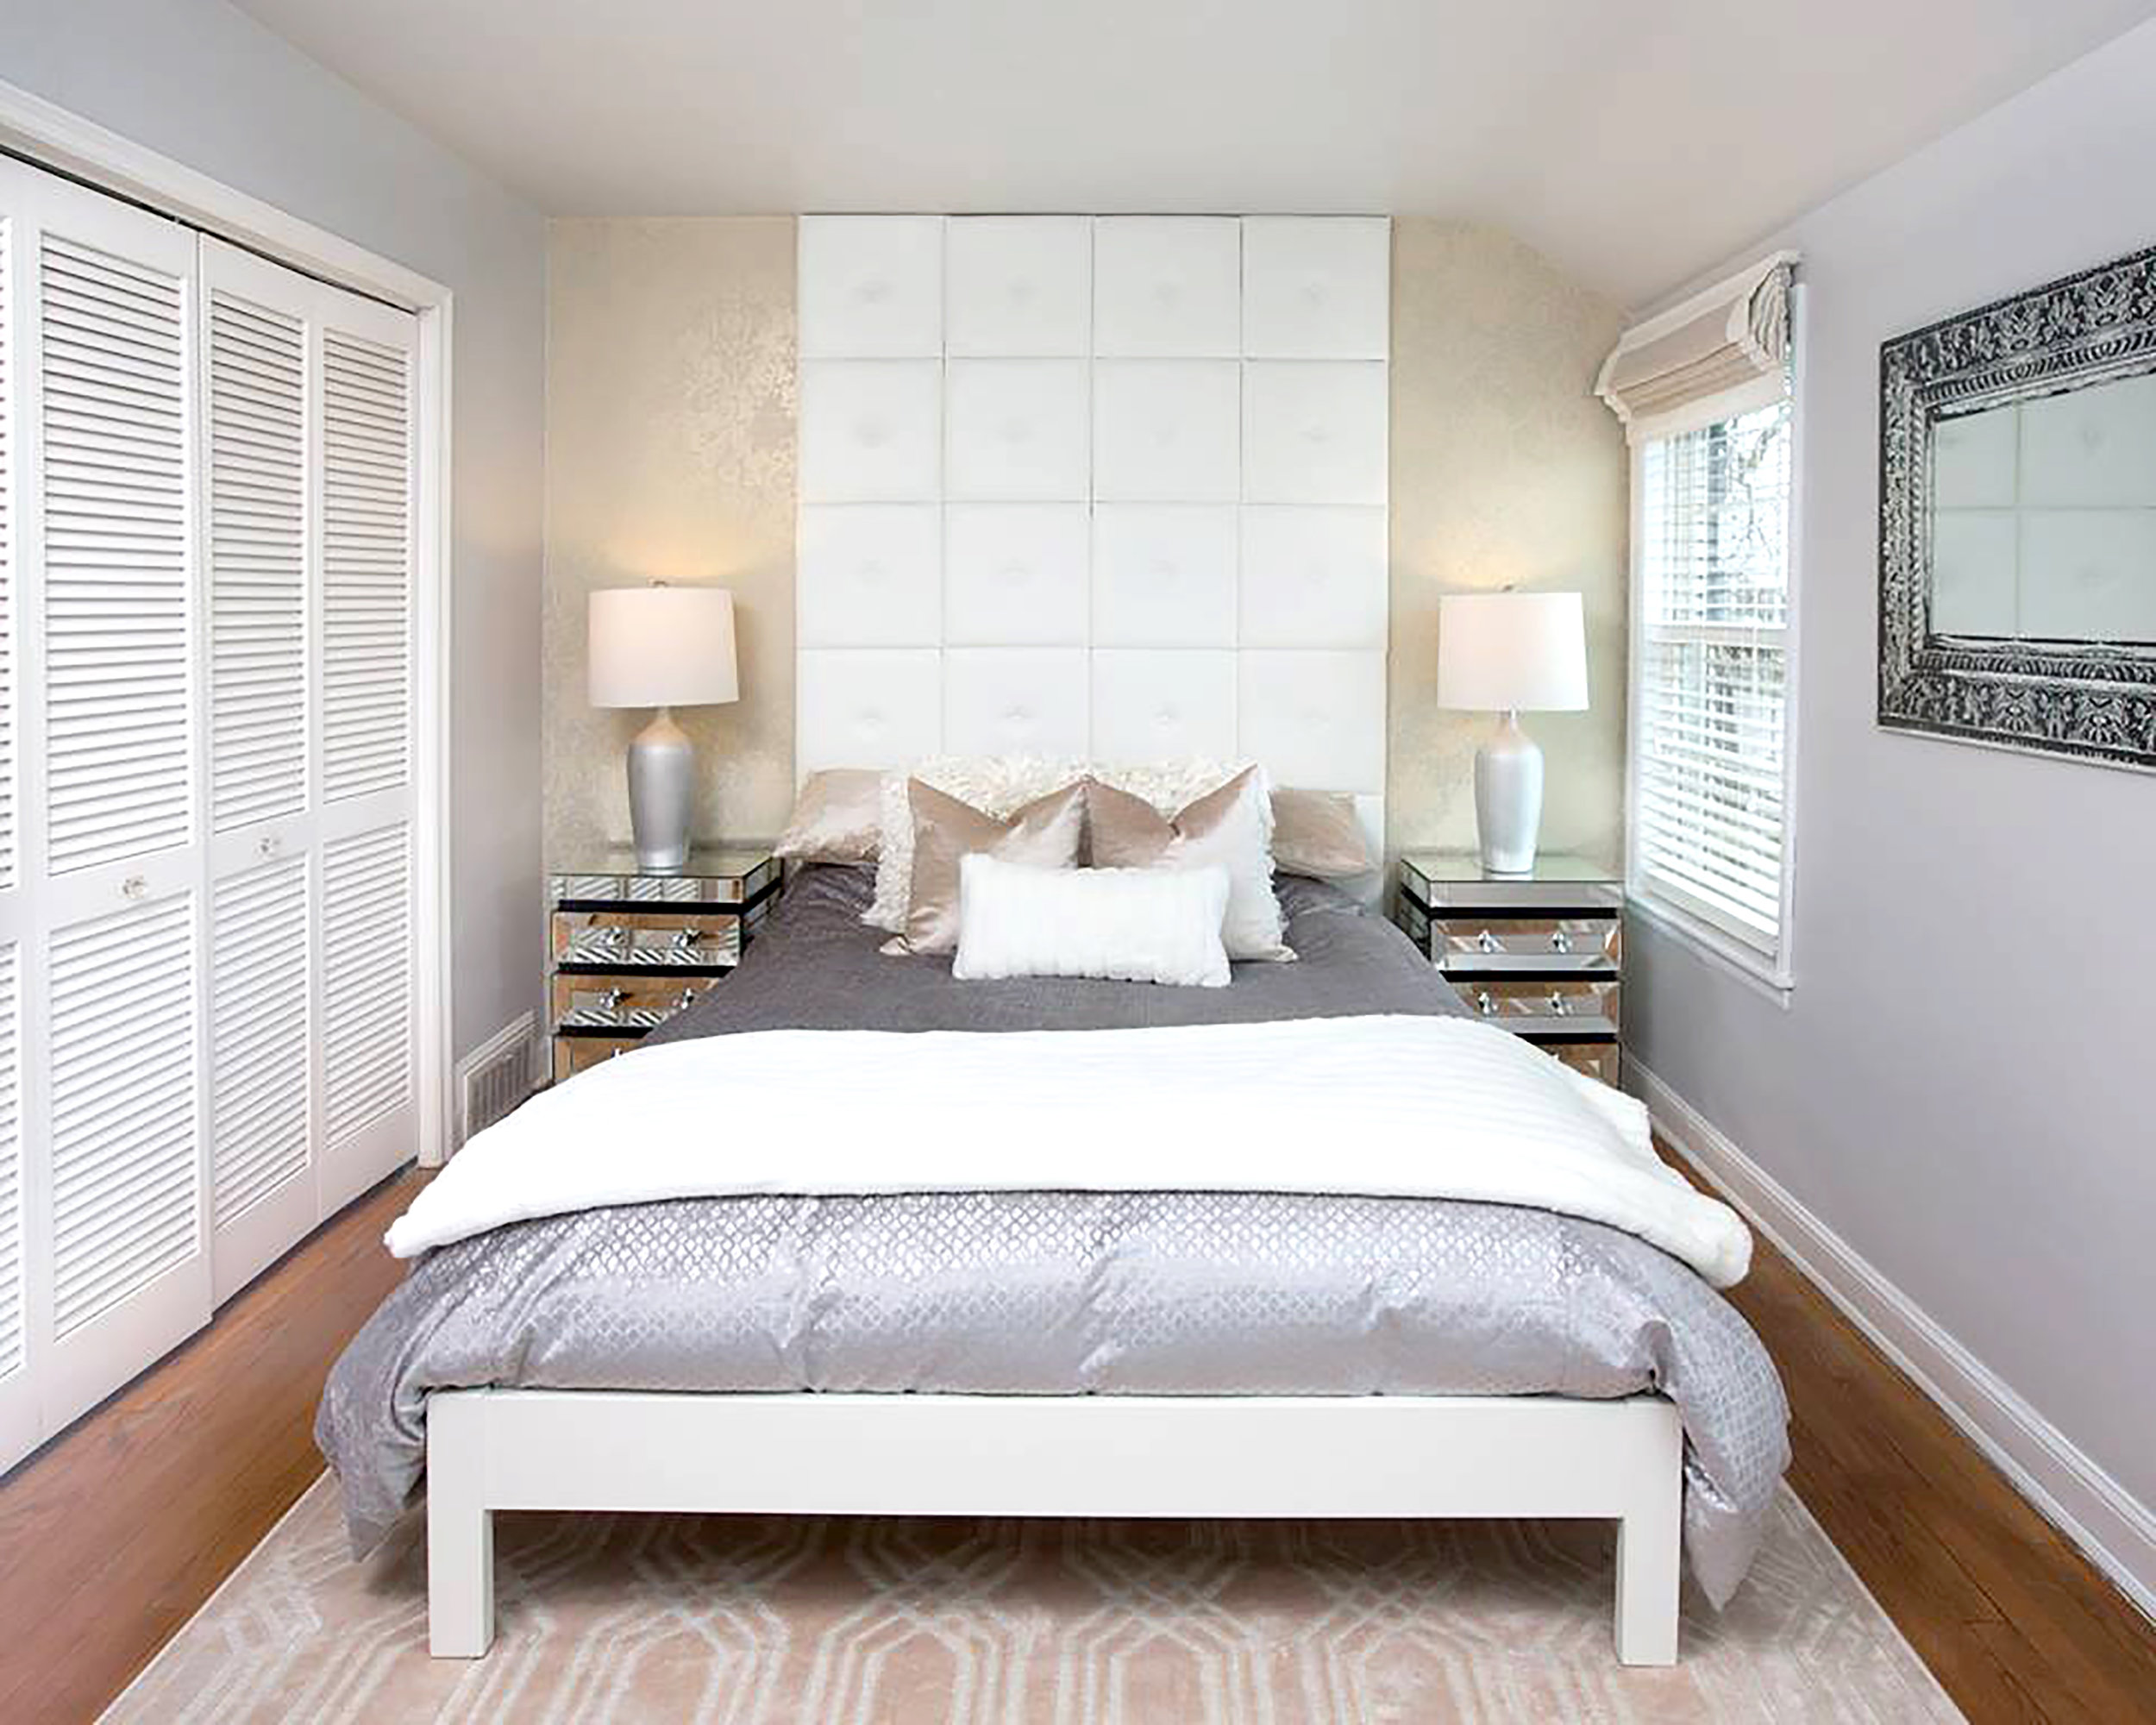 Wall Pixels used as wall accent and headboard. Photo by Happy Interiors Group